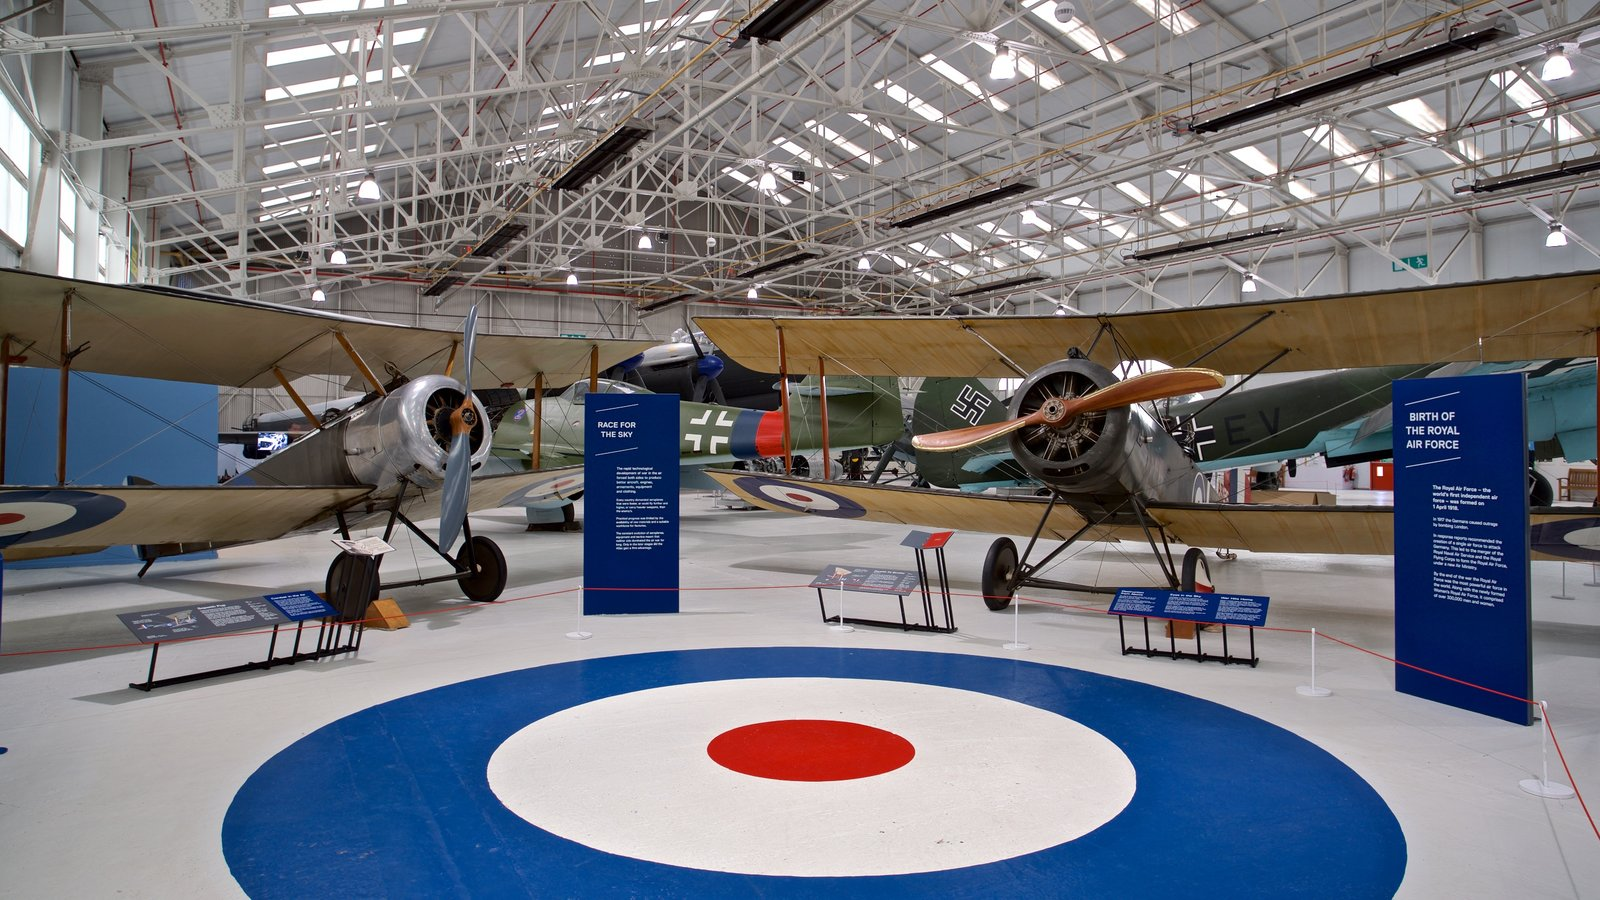 Cosford Royal Air Force Museum featuring aircraft, interior views and heritage elements